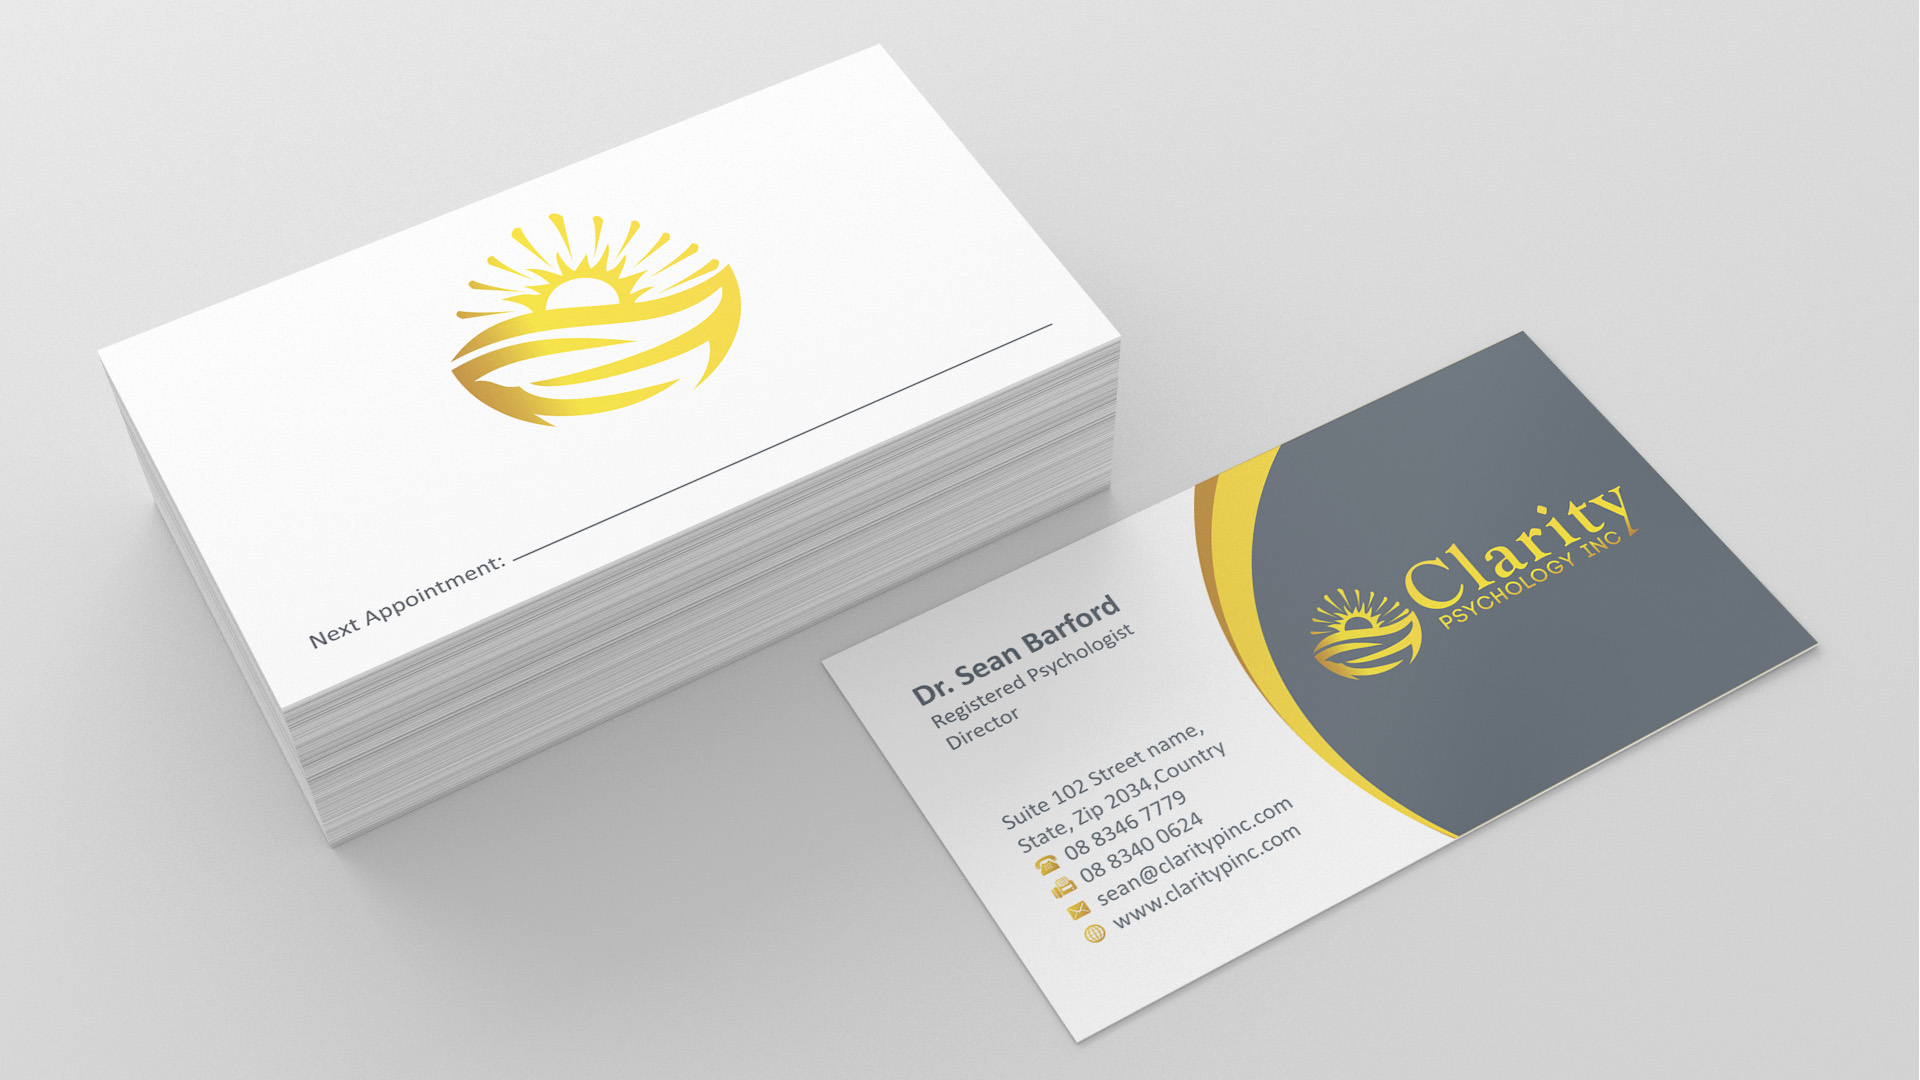 Business card design contests professional business card design business card design by muhammad aslam entry no 121 in the business card design colourmoves Image collections